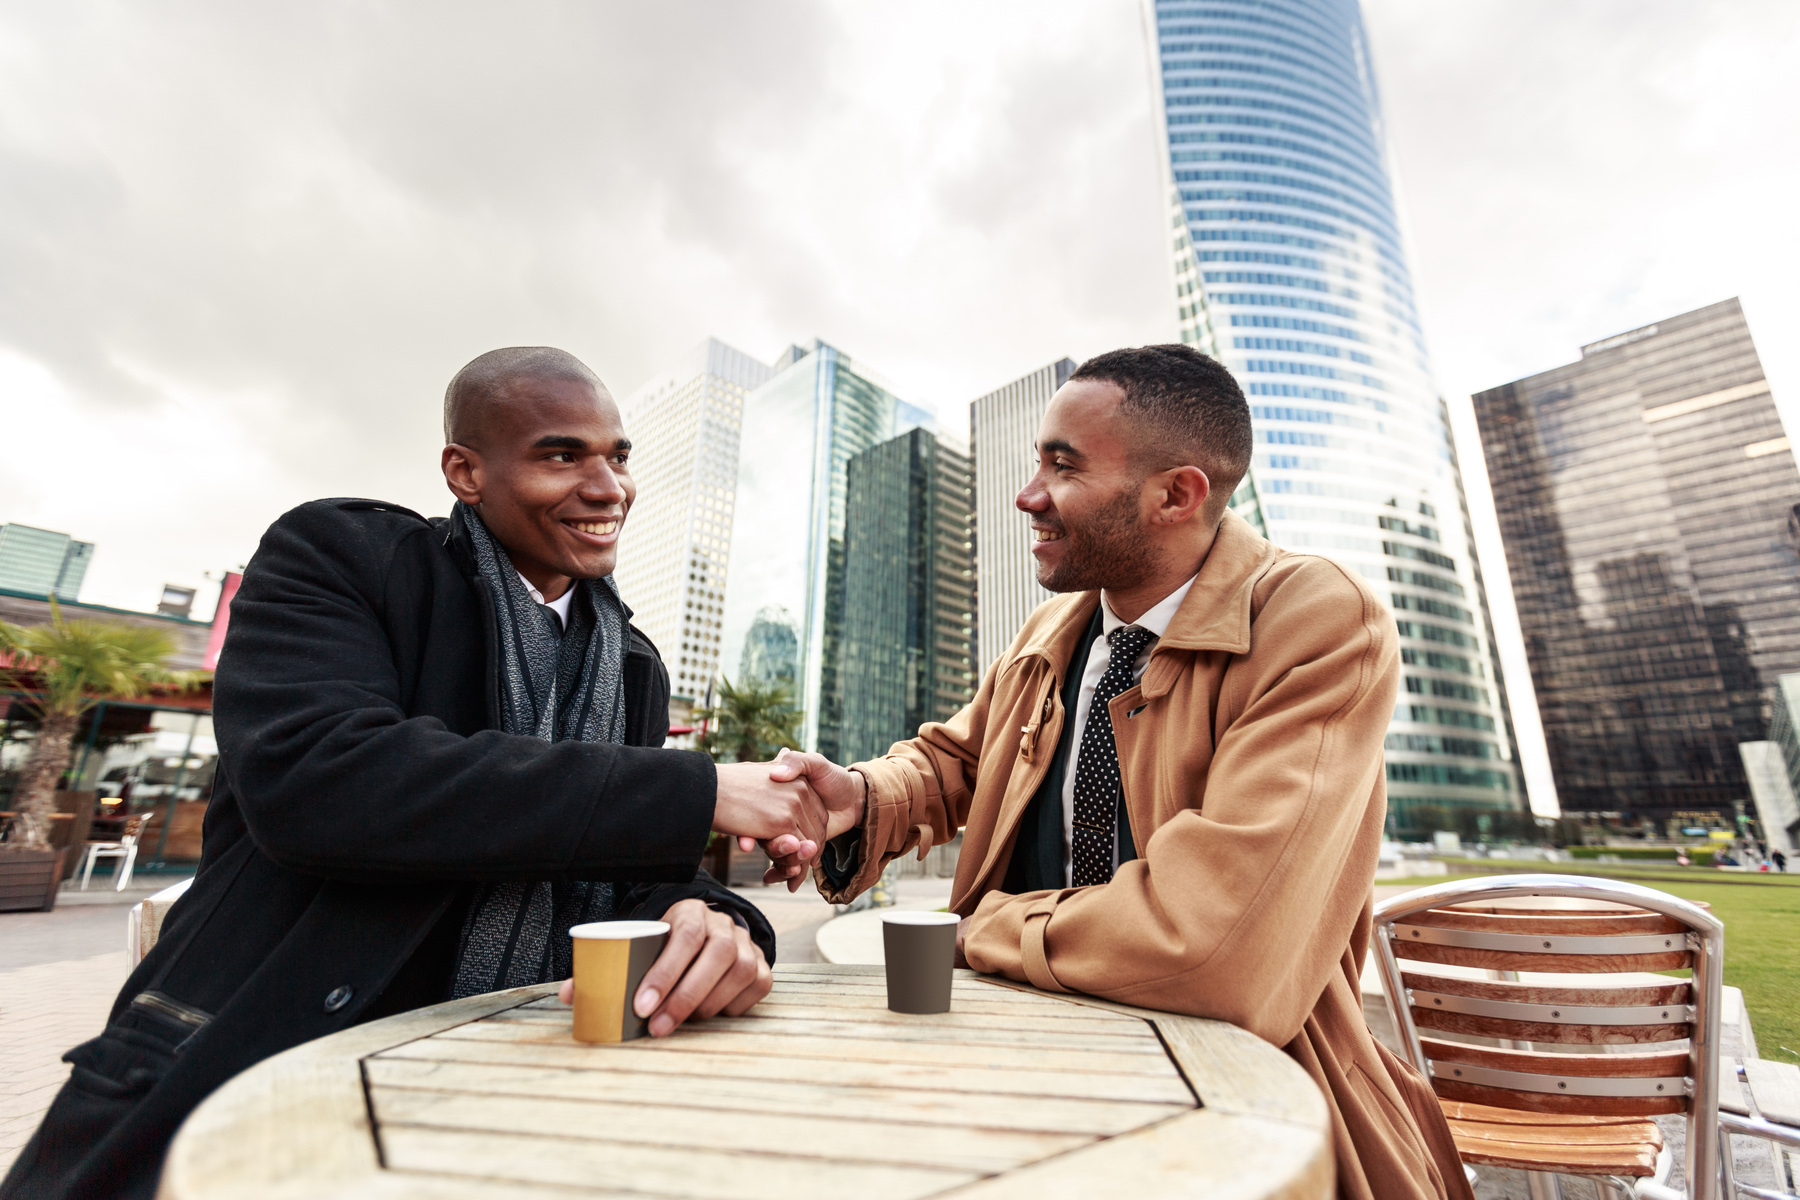 Two colleagues meeting over a coffee outside